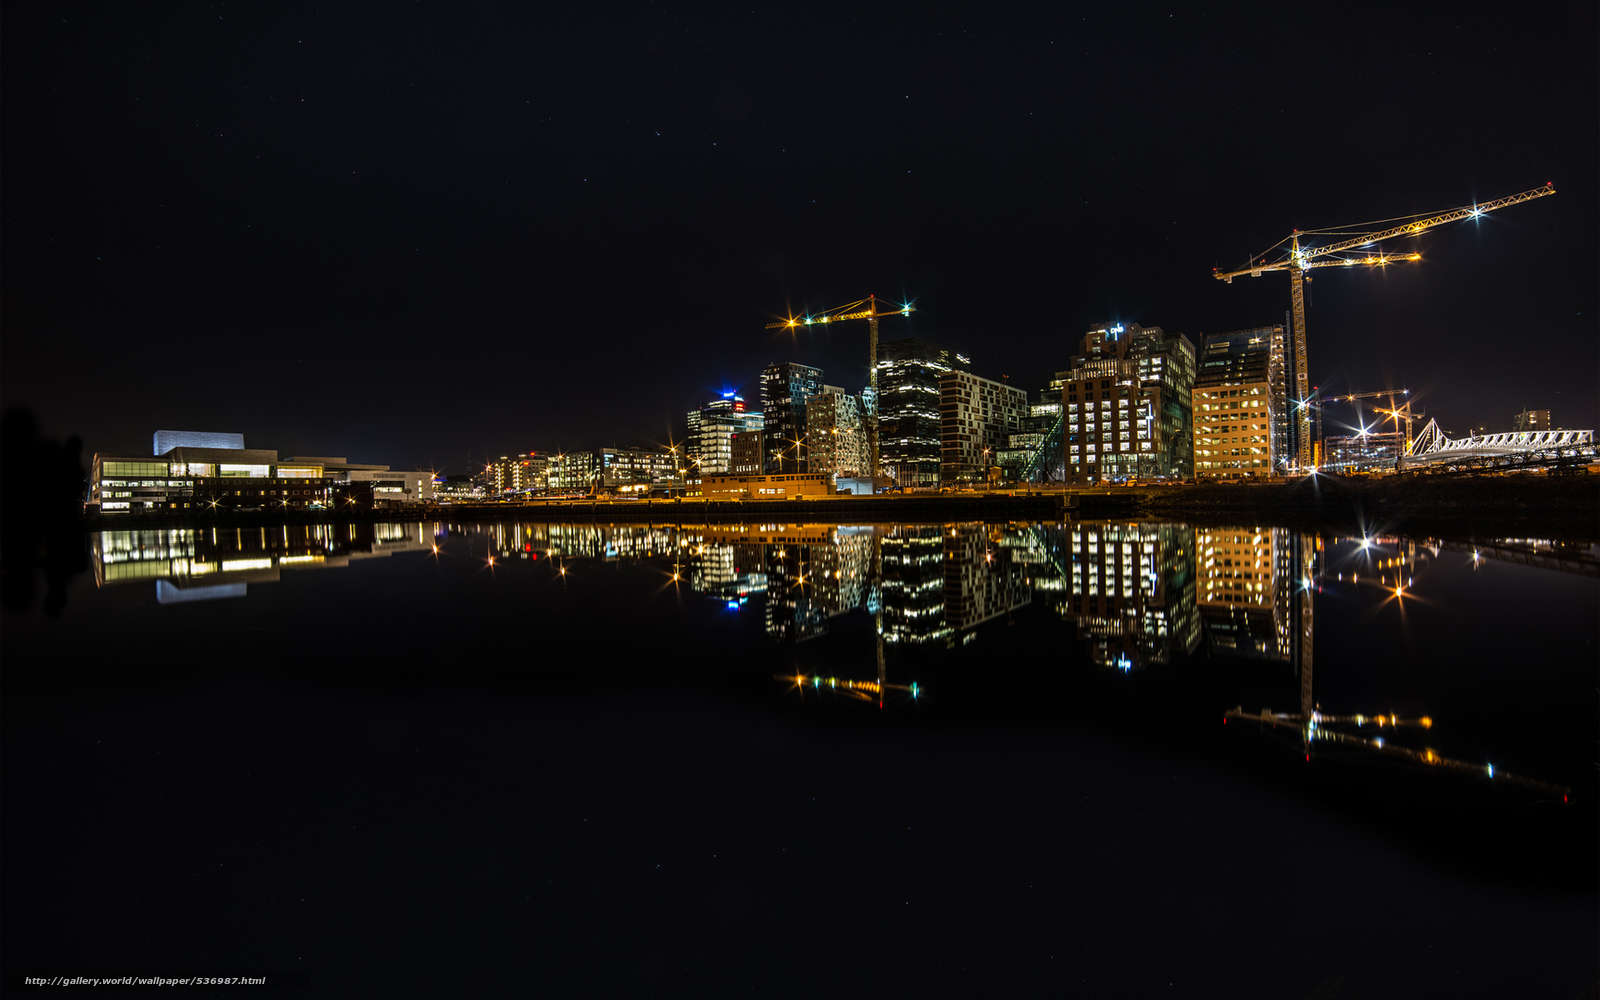 Download wallpaper tower crane river city lights free - Wallpaper picture ...